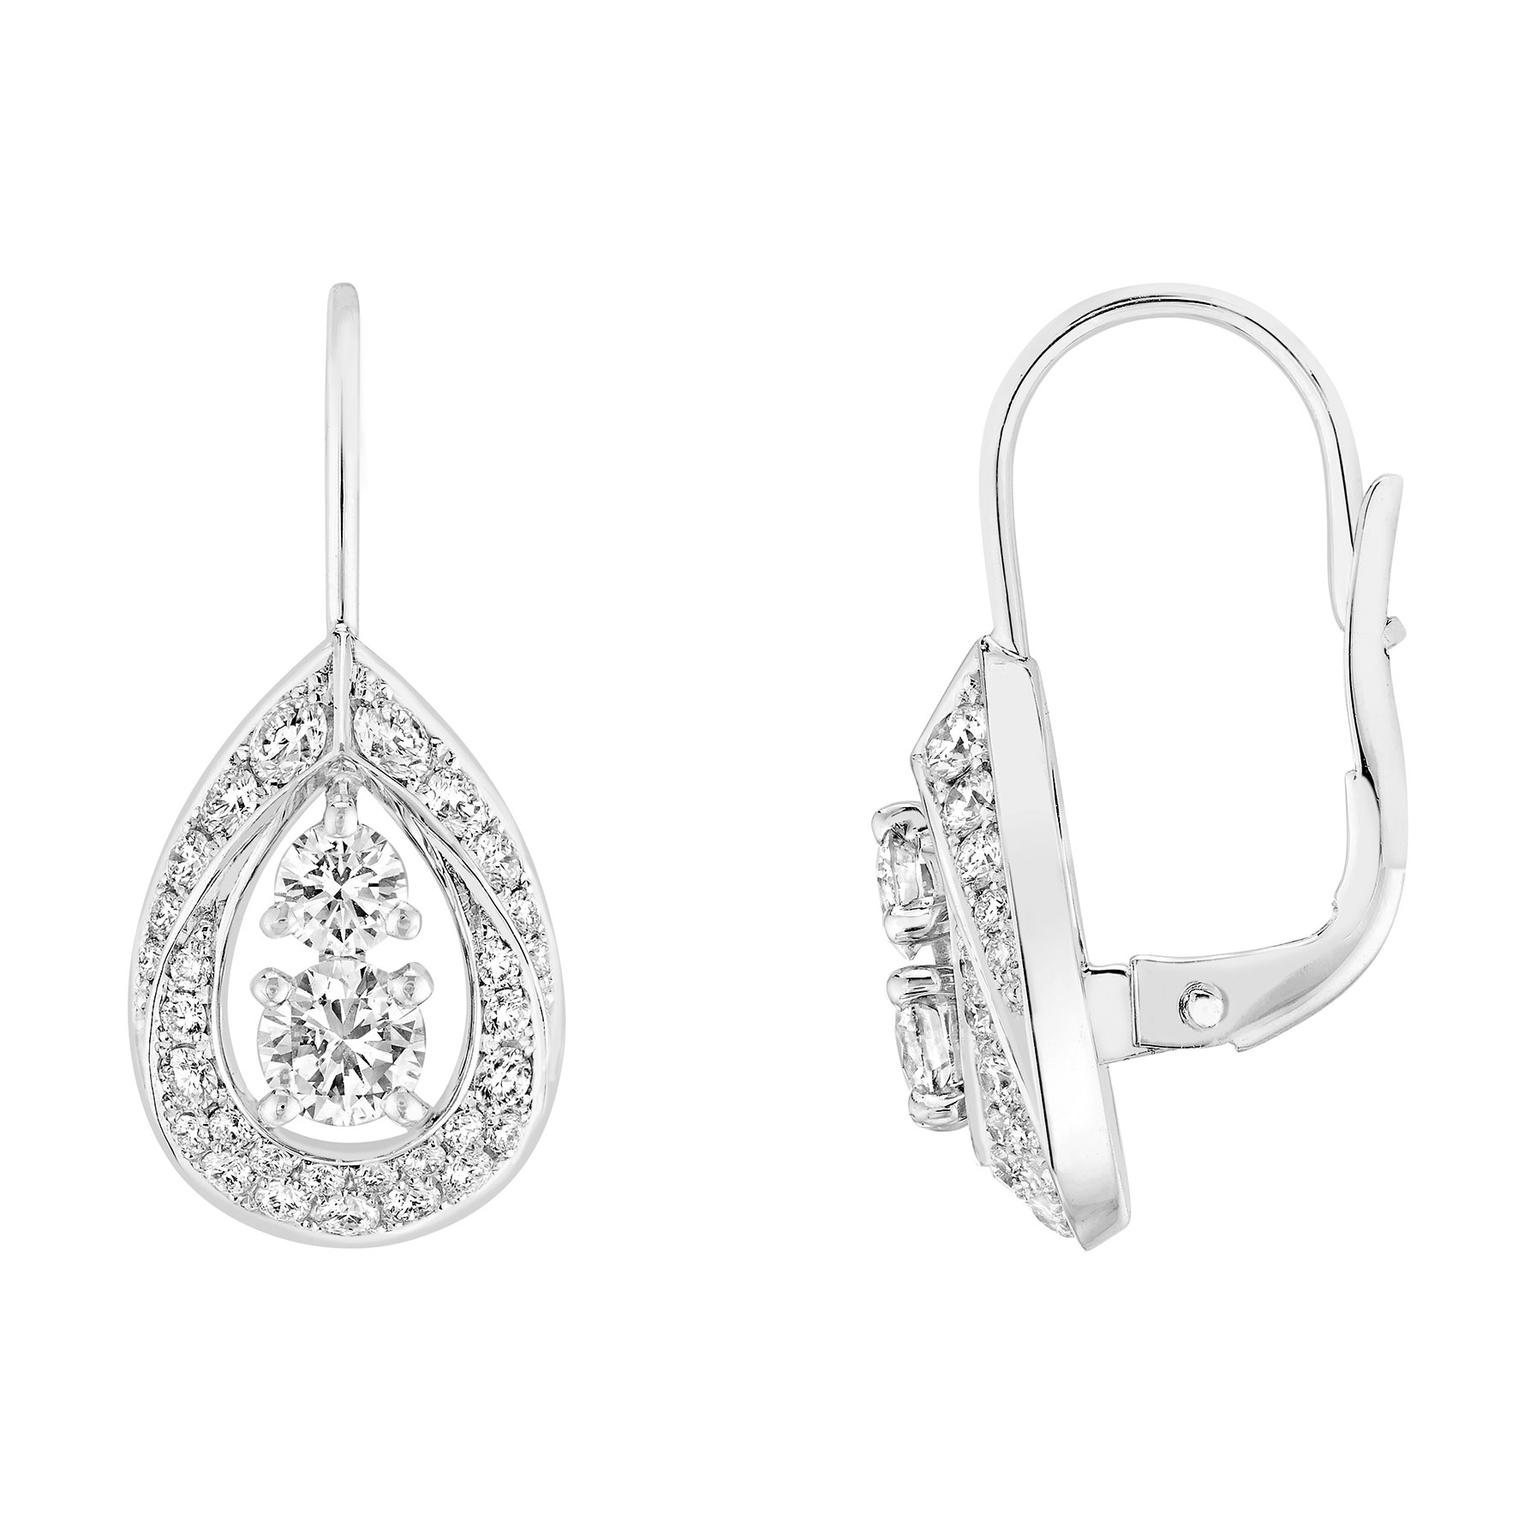 Chaumet Toi & Moi Joséphine Rondes des Nuit earrings in white gold with diamonds